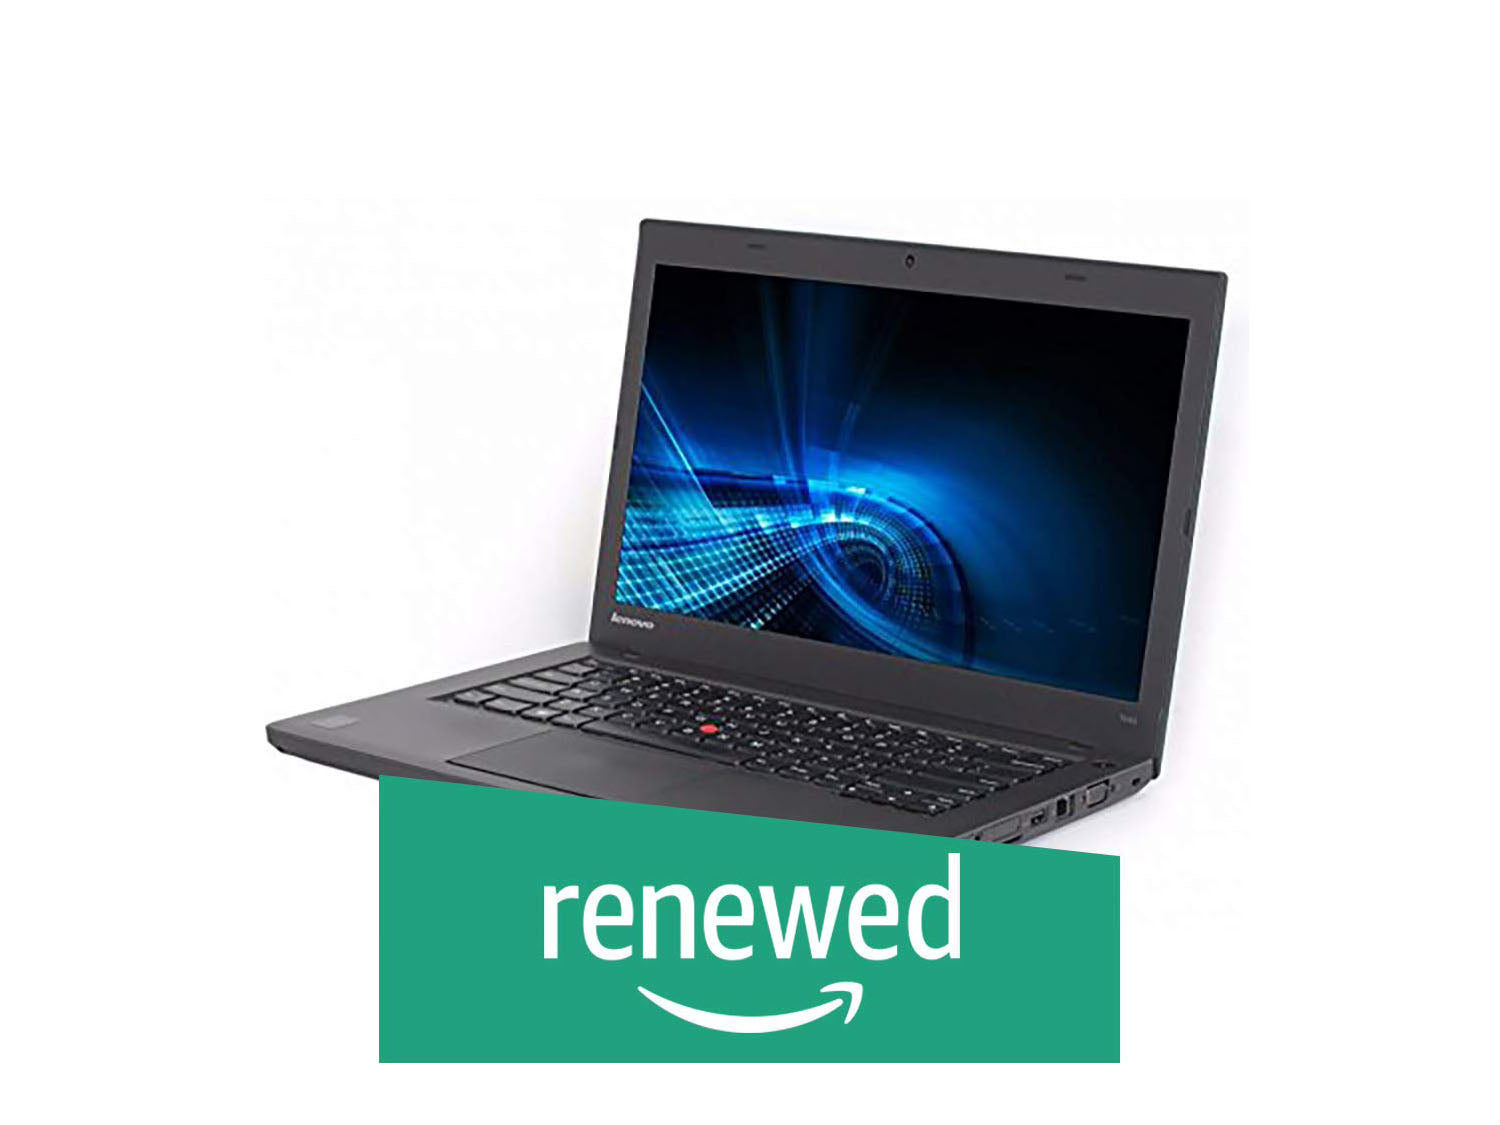 Lenovo T440s (i5 4th Generation)